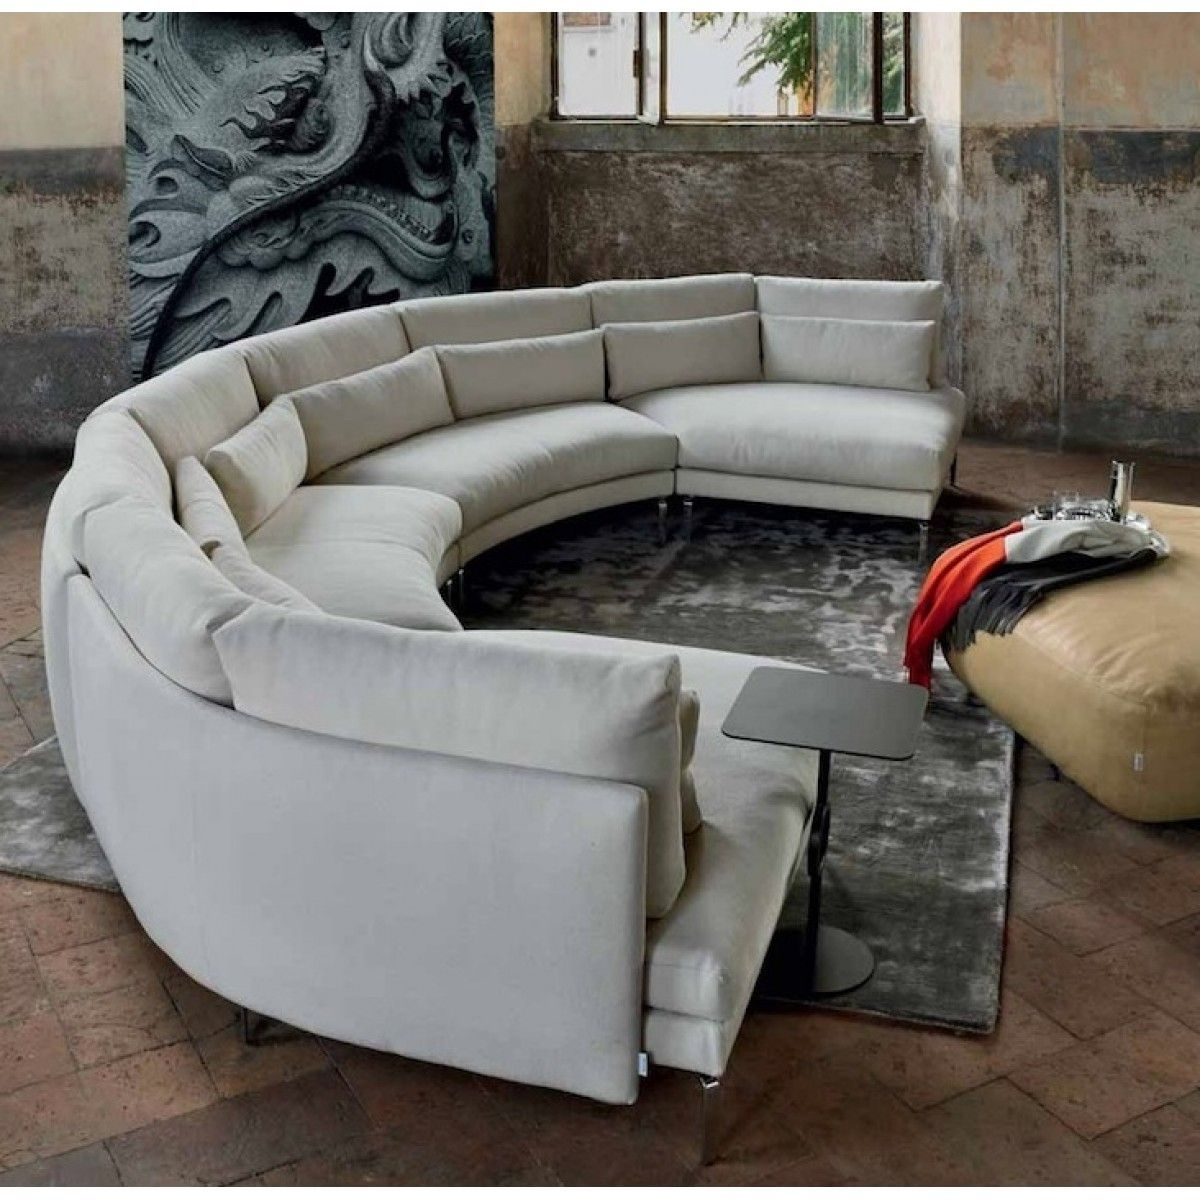 Pindaniel Harper On Decor | Pinterest | Round Couch, Comfortable Intended For Semicircular Sofas (View 4 of 10)